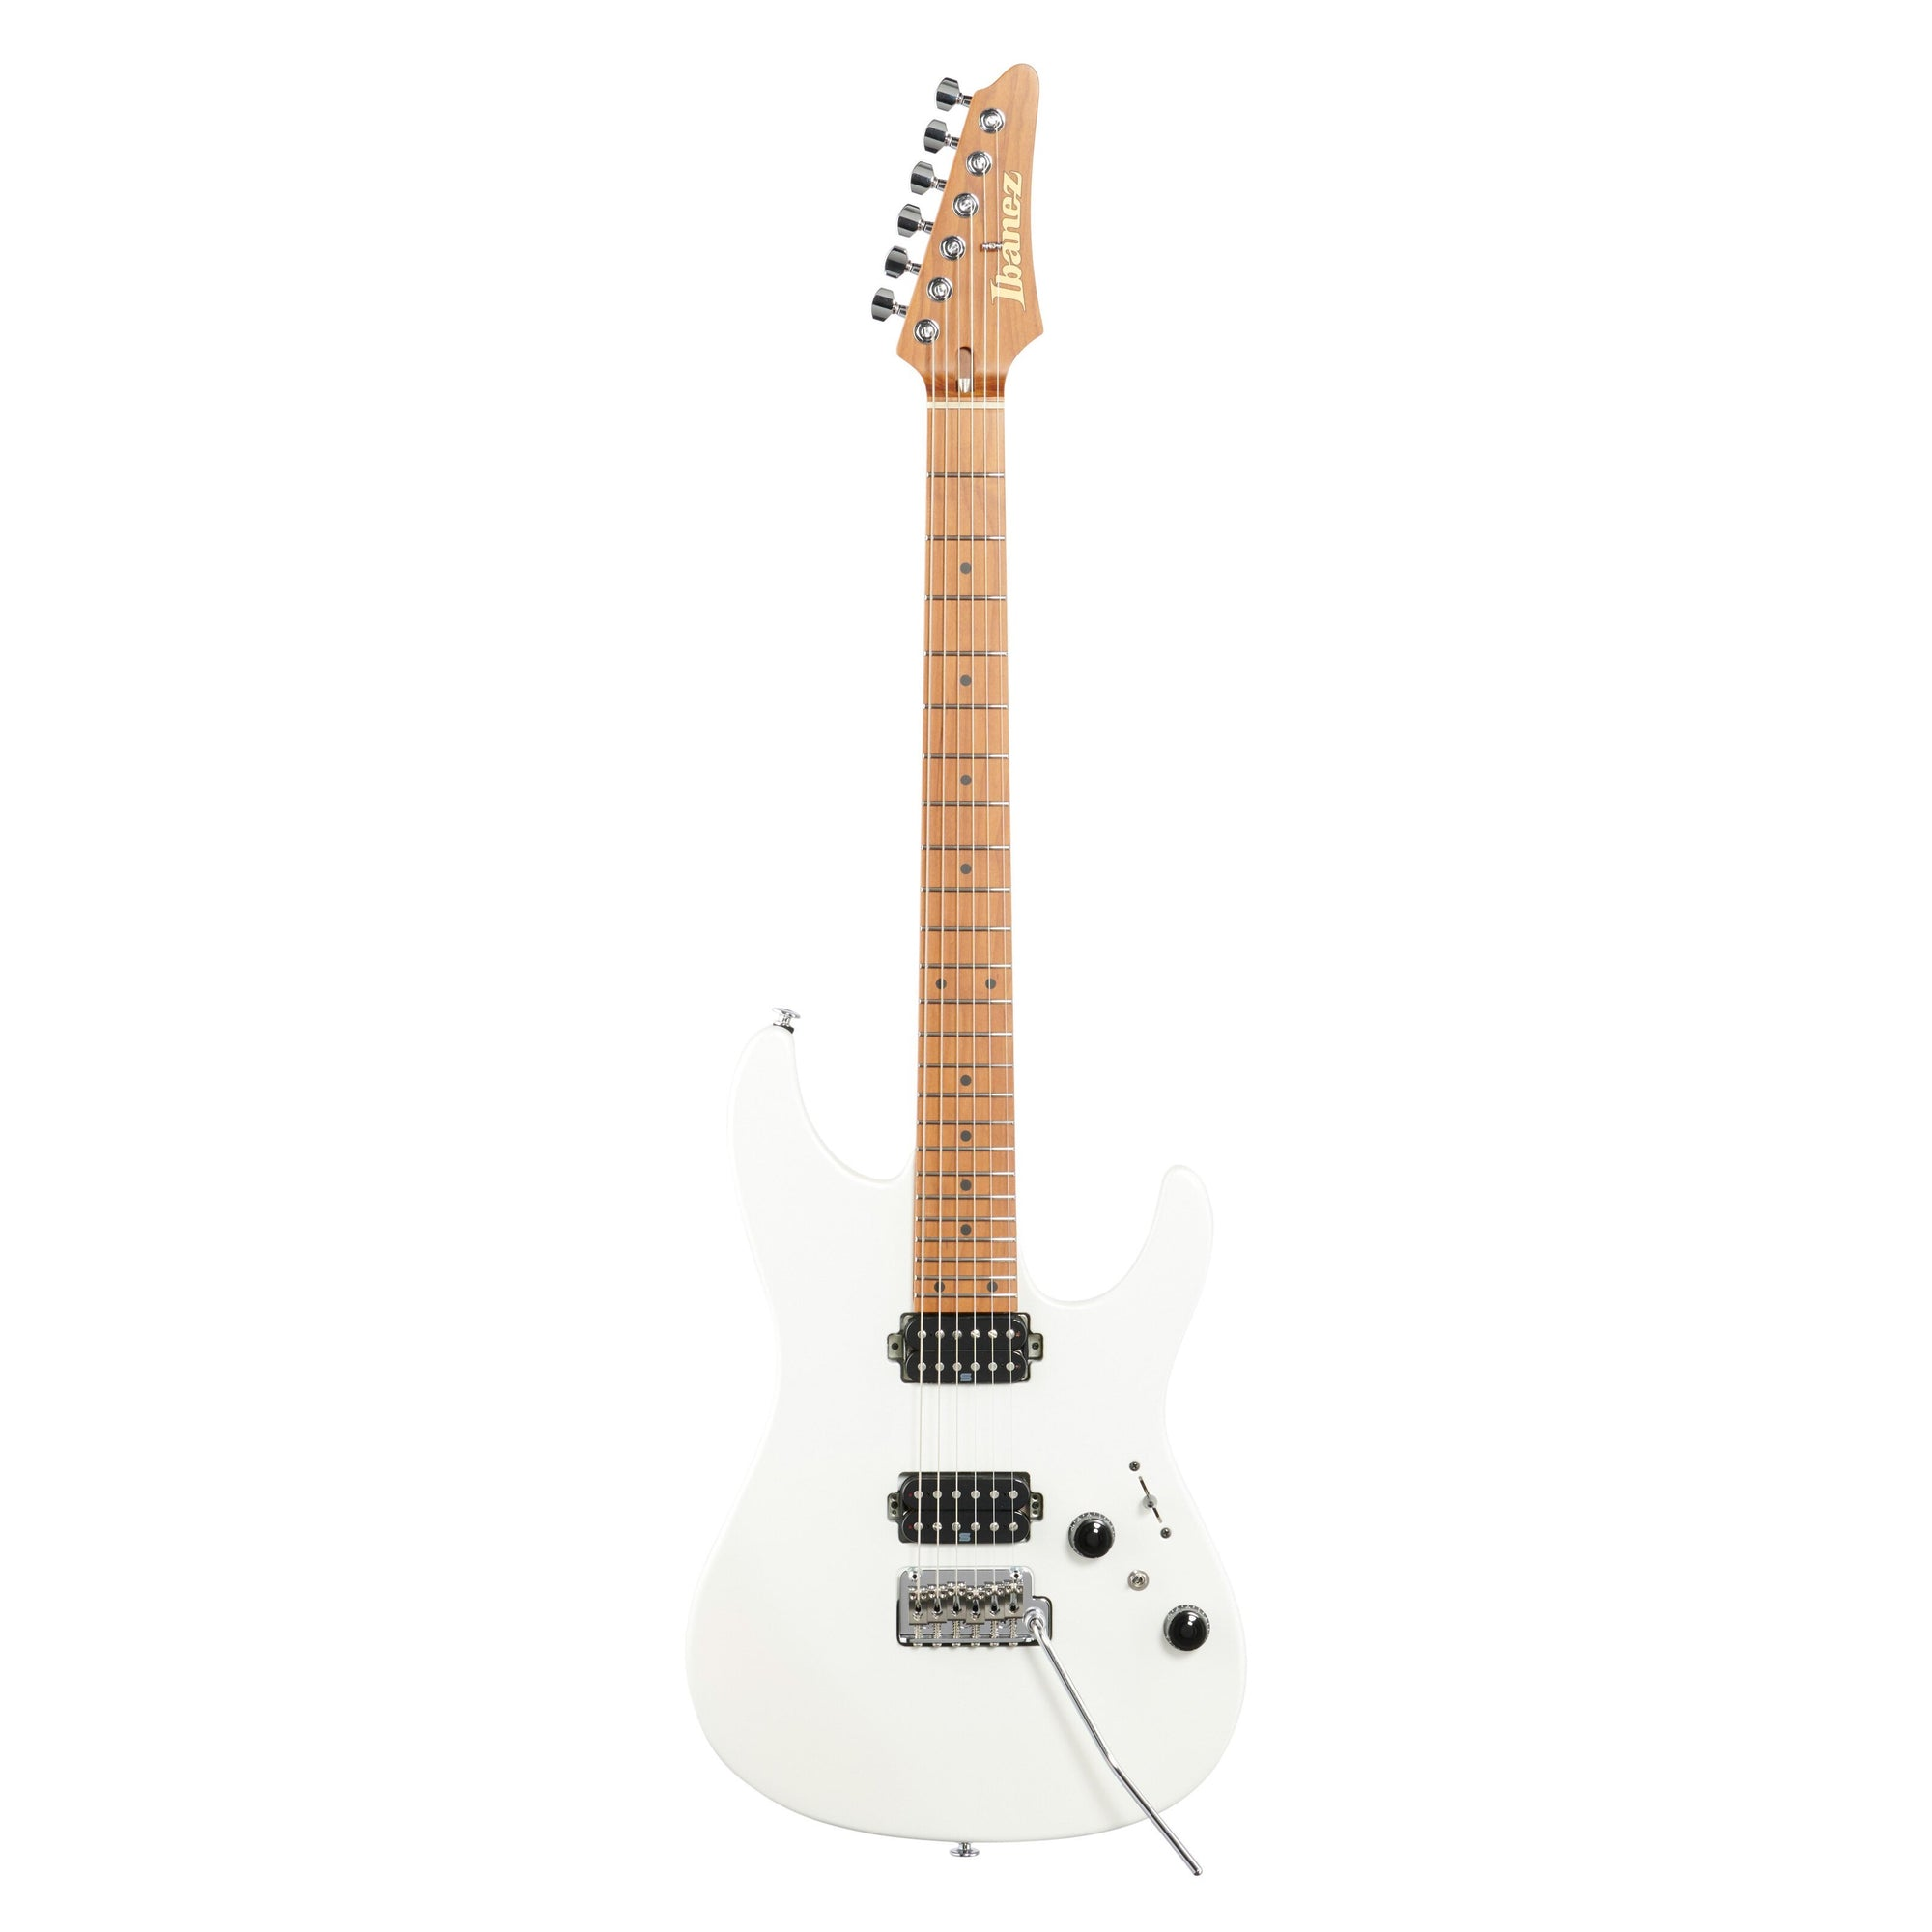 Ibanez Prestige AZ2402 Electric Guitar (with Case), Pearl White Flat